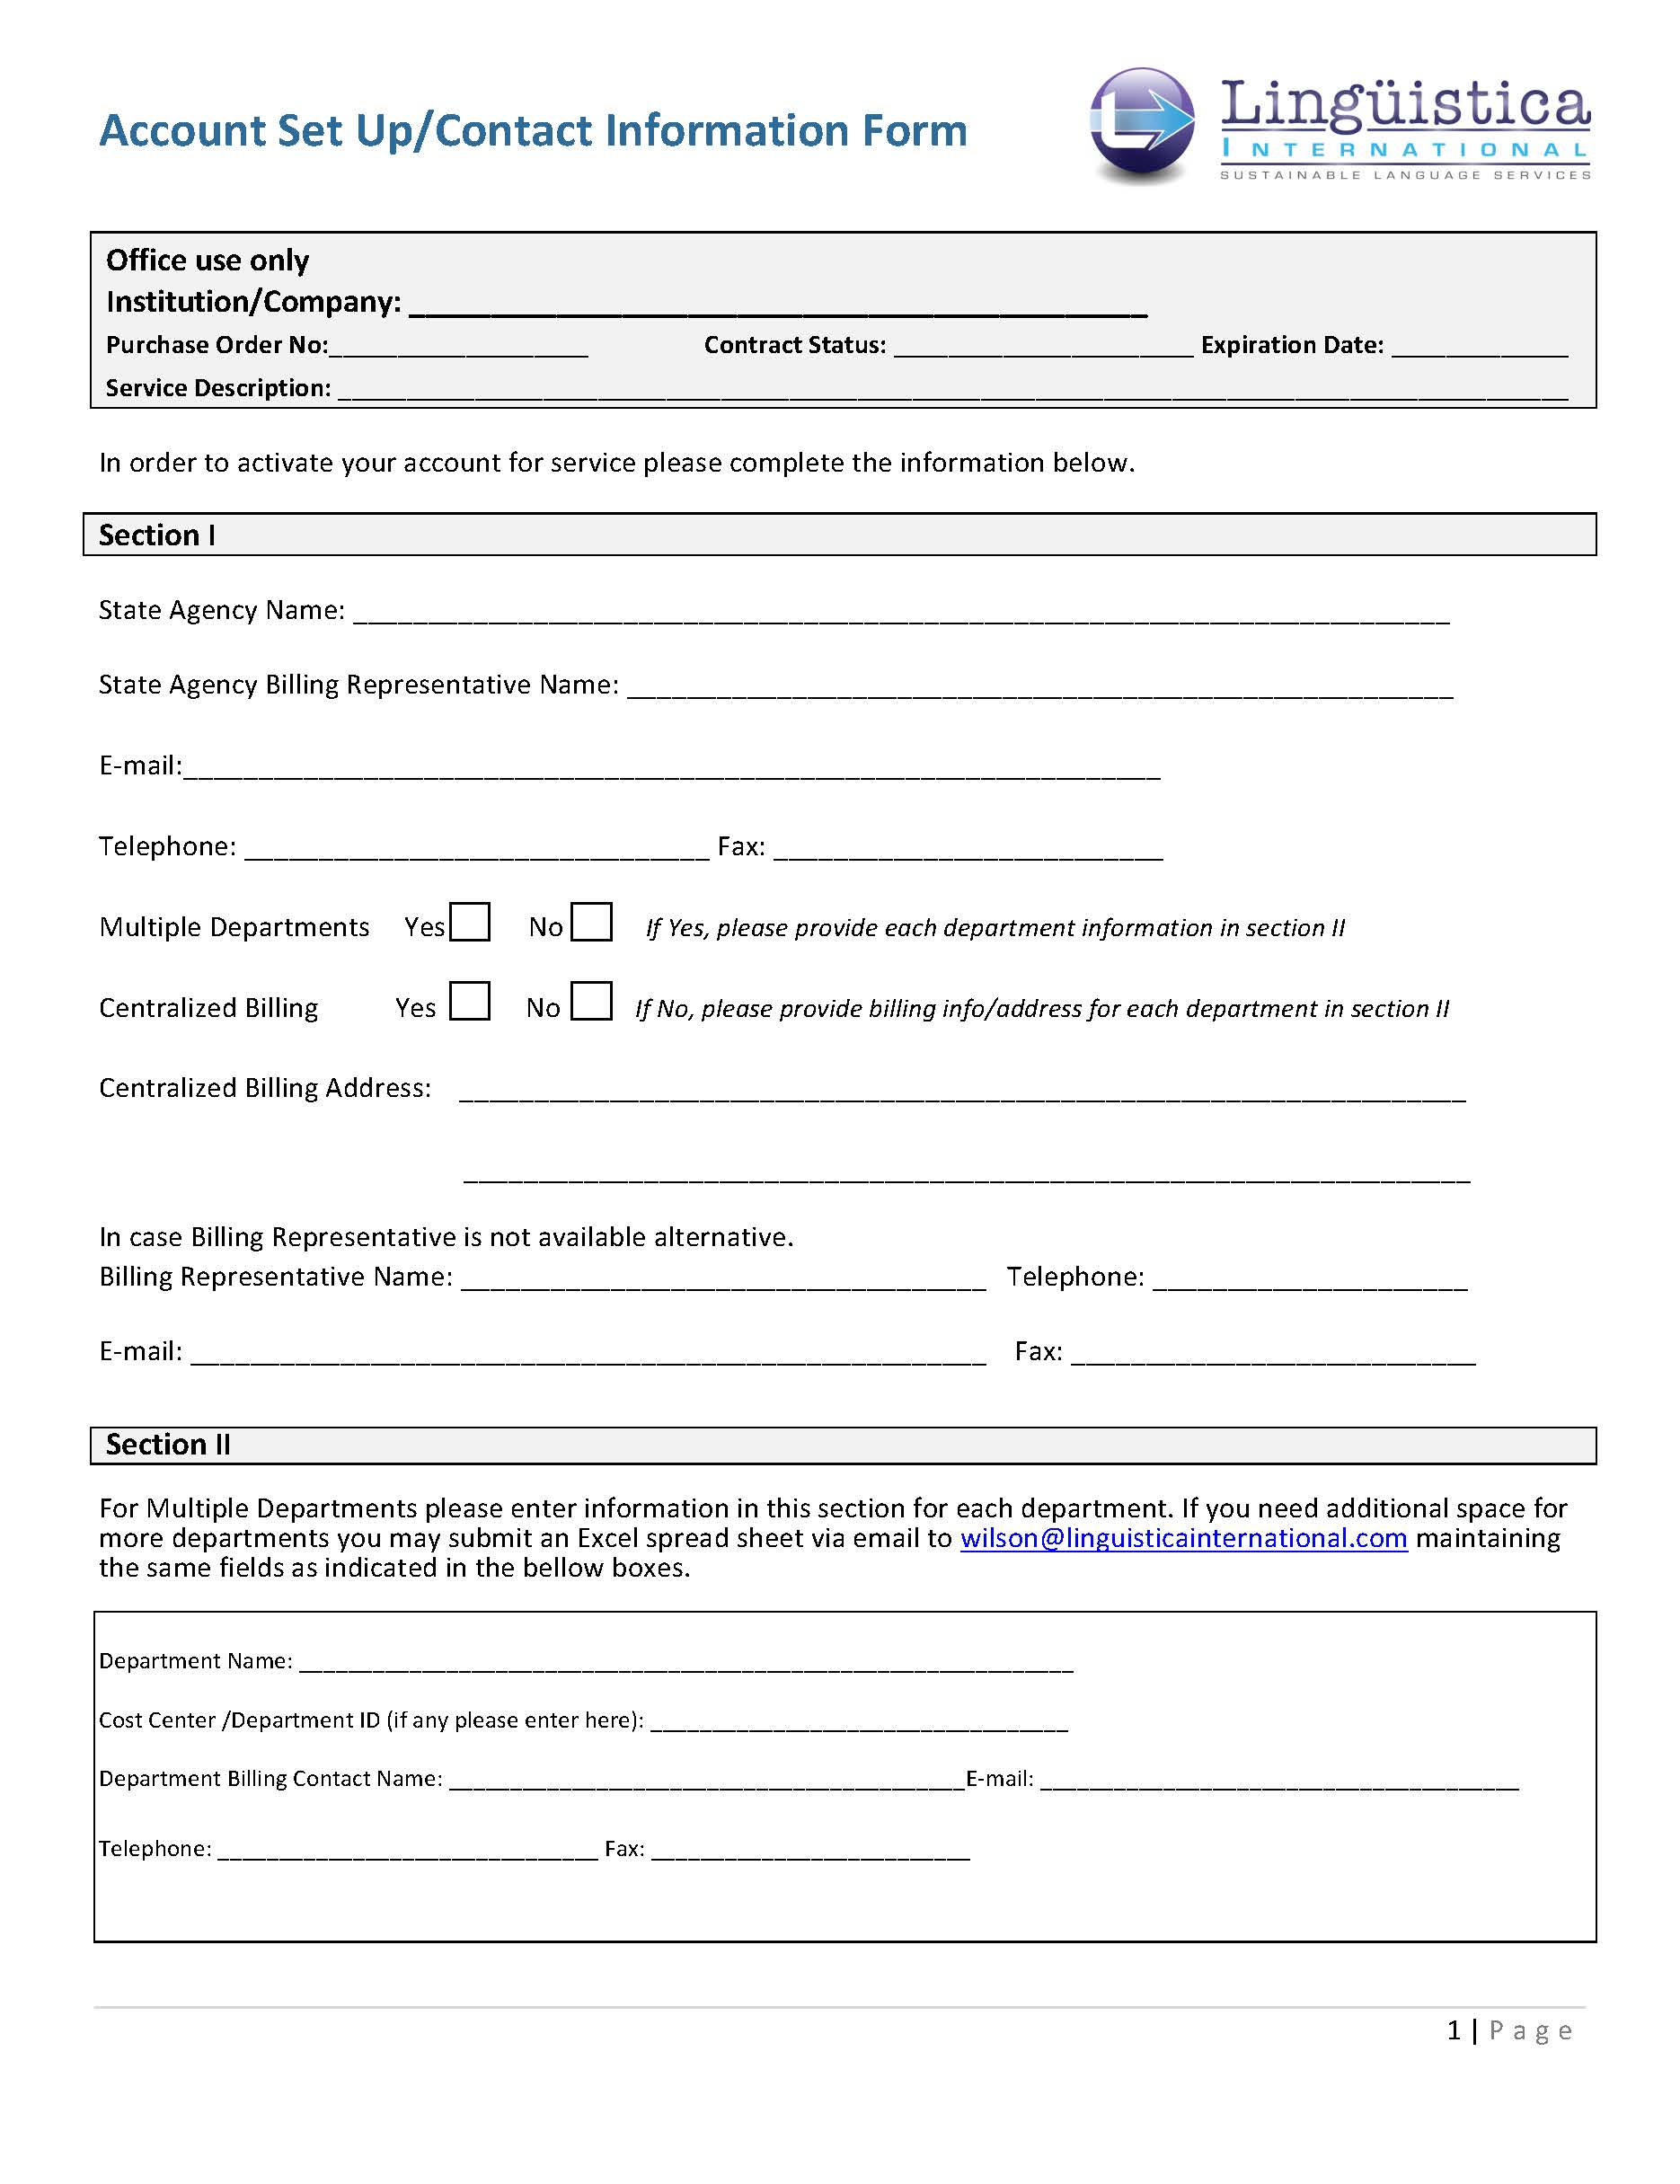 Account Sep Up form - General_Page_1